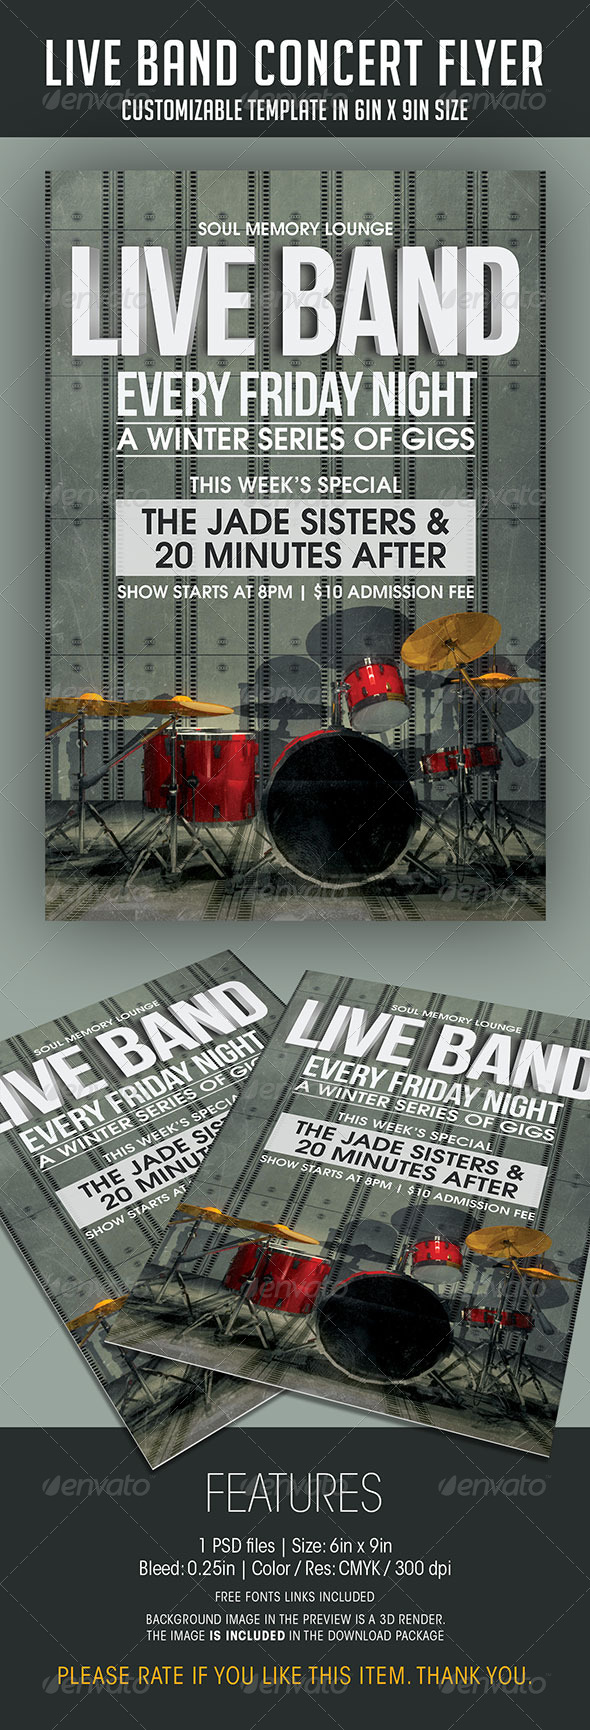 Live Band Gigs Flyer by soulmemoria | GraphicRiver